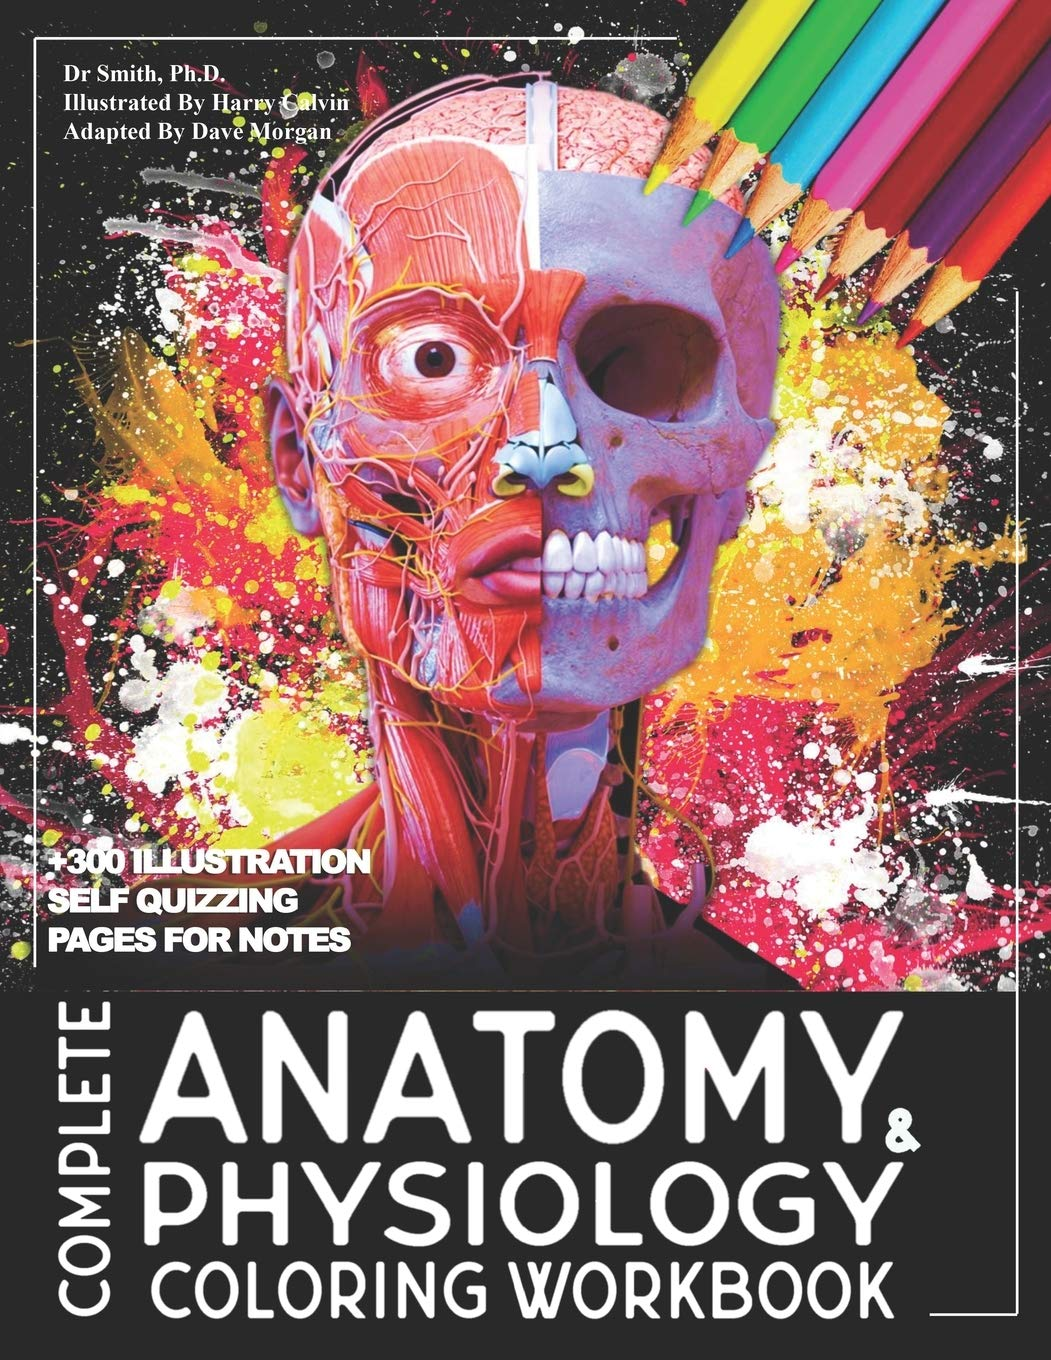 Complete Anatomy And Physiology Coloring Workbook A Complete Study Guide Phd Dr Smith 9798690789480 Amazon Com Books